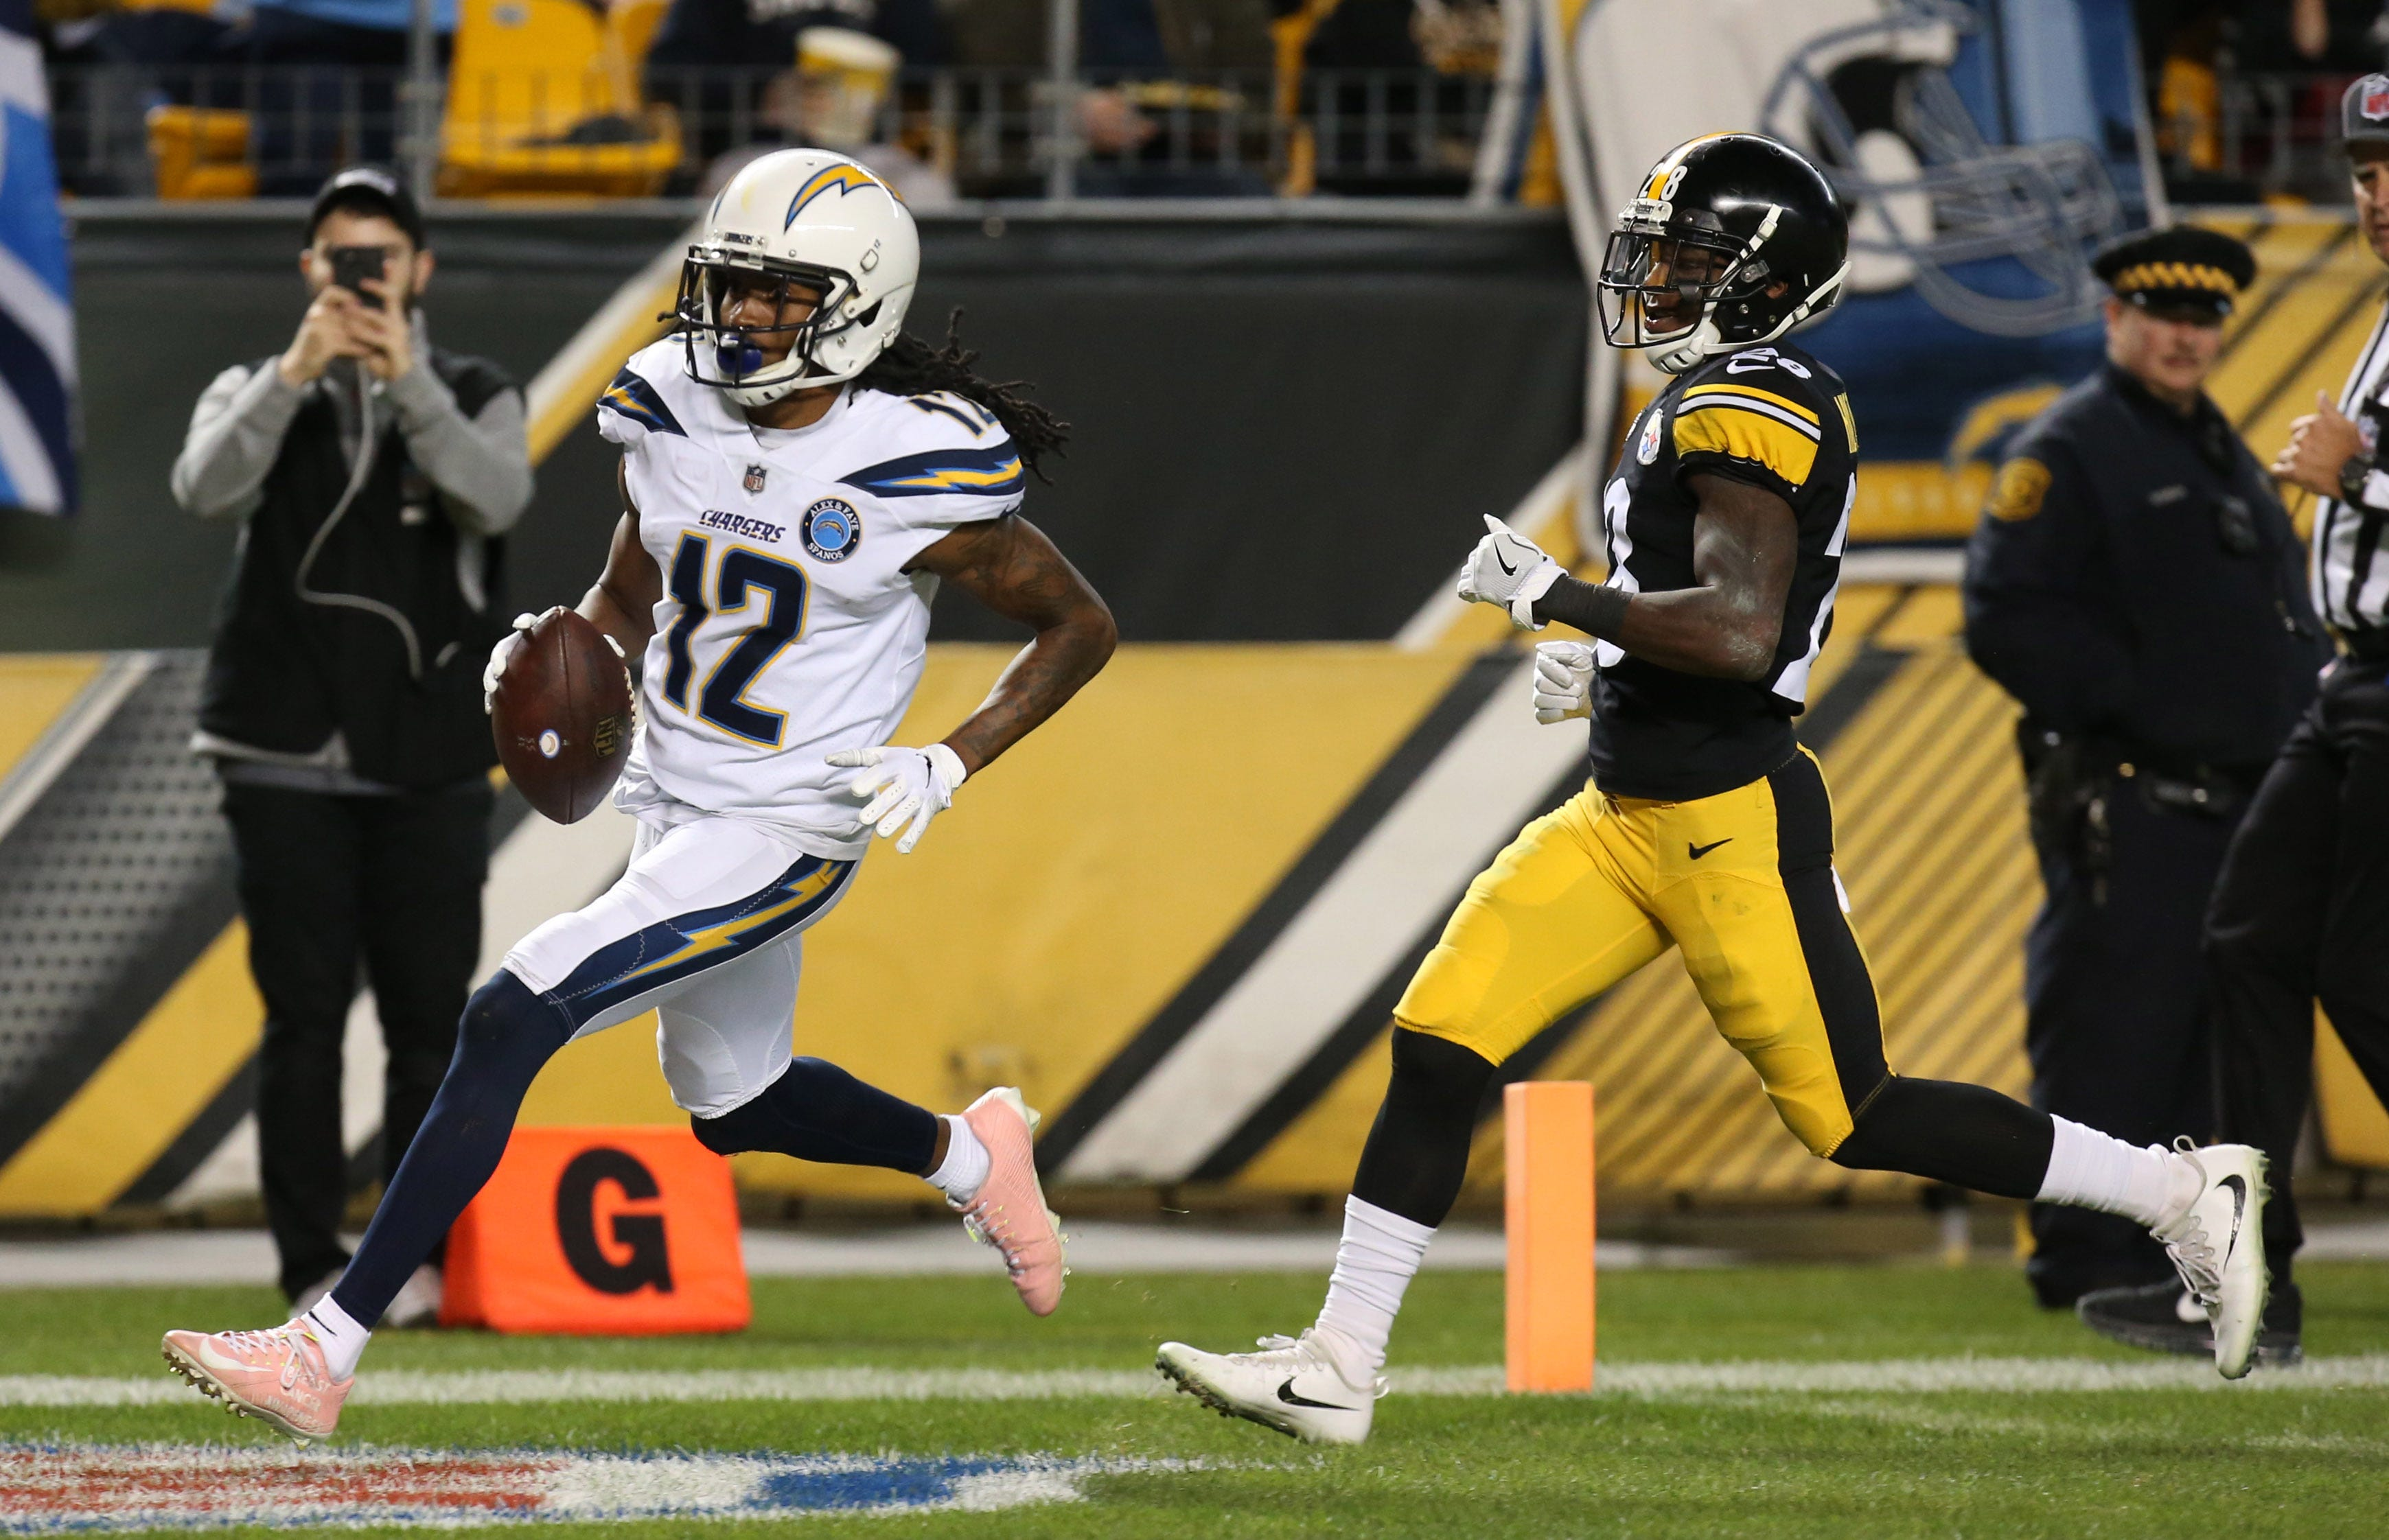 Los Angeles Chargers wide receiver Travis Benjamin (12) scores a touchdown past Pittsburgh Steelers cornerback Mike Hilton (28) during the first quarter at Heinz Field.